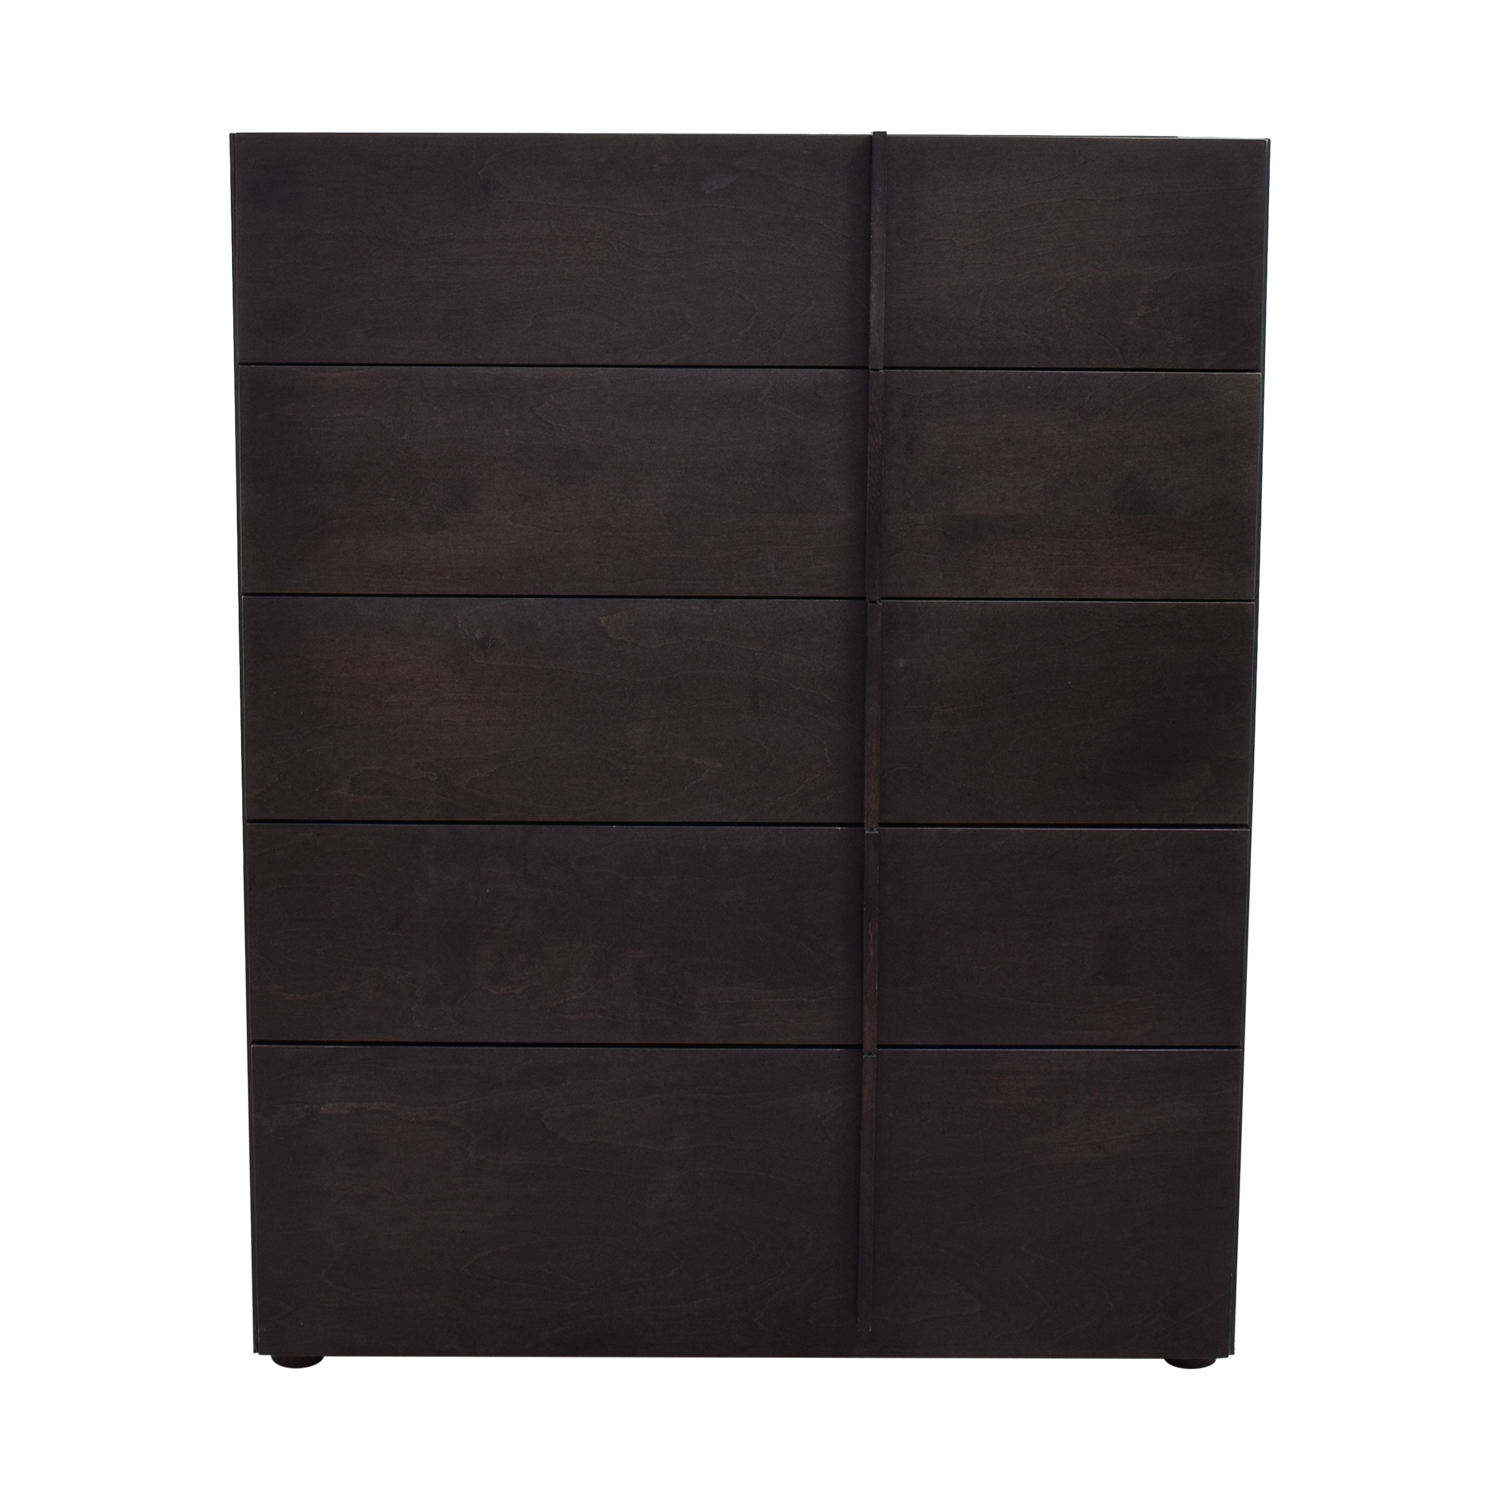 ABC Carpet and Home ABC Carpet and Home Tall Dresser price